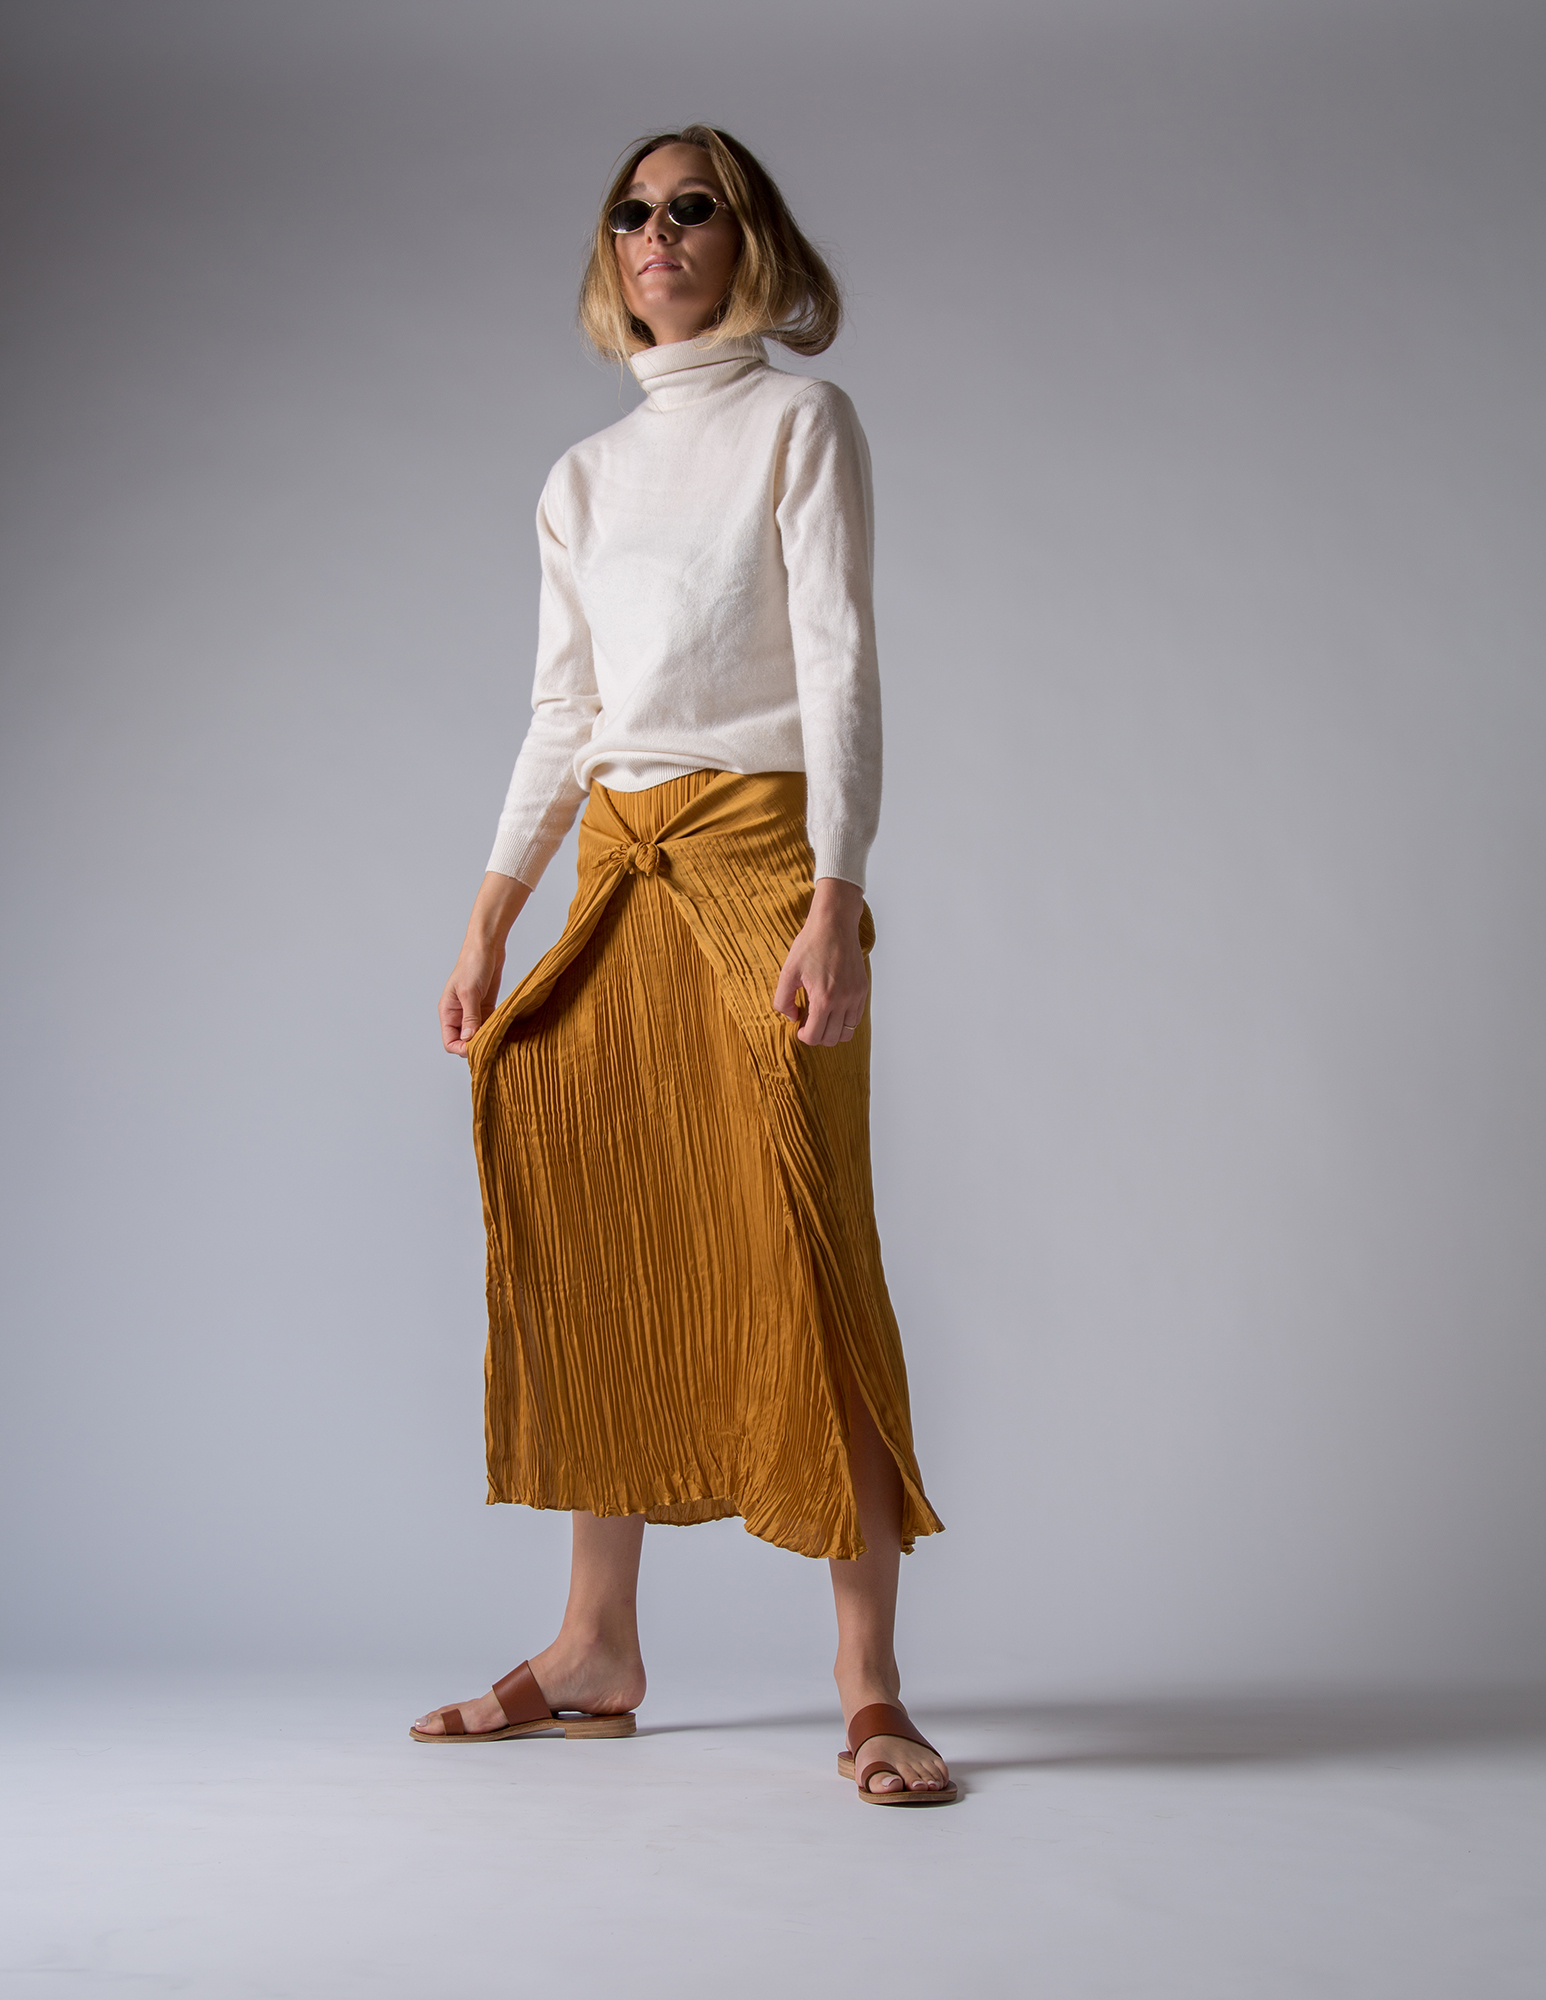 Vintage sweater, Theory skirt, Stace Fulwiler shoes, Club La vintage sunglasses